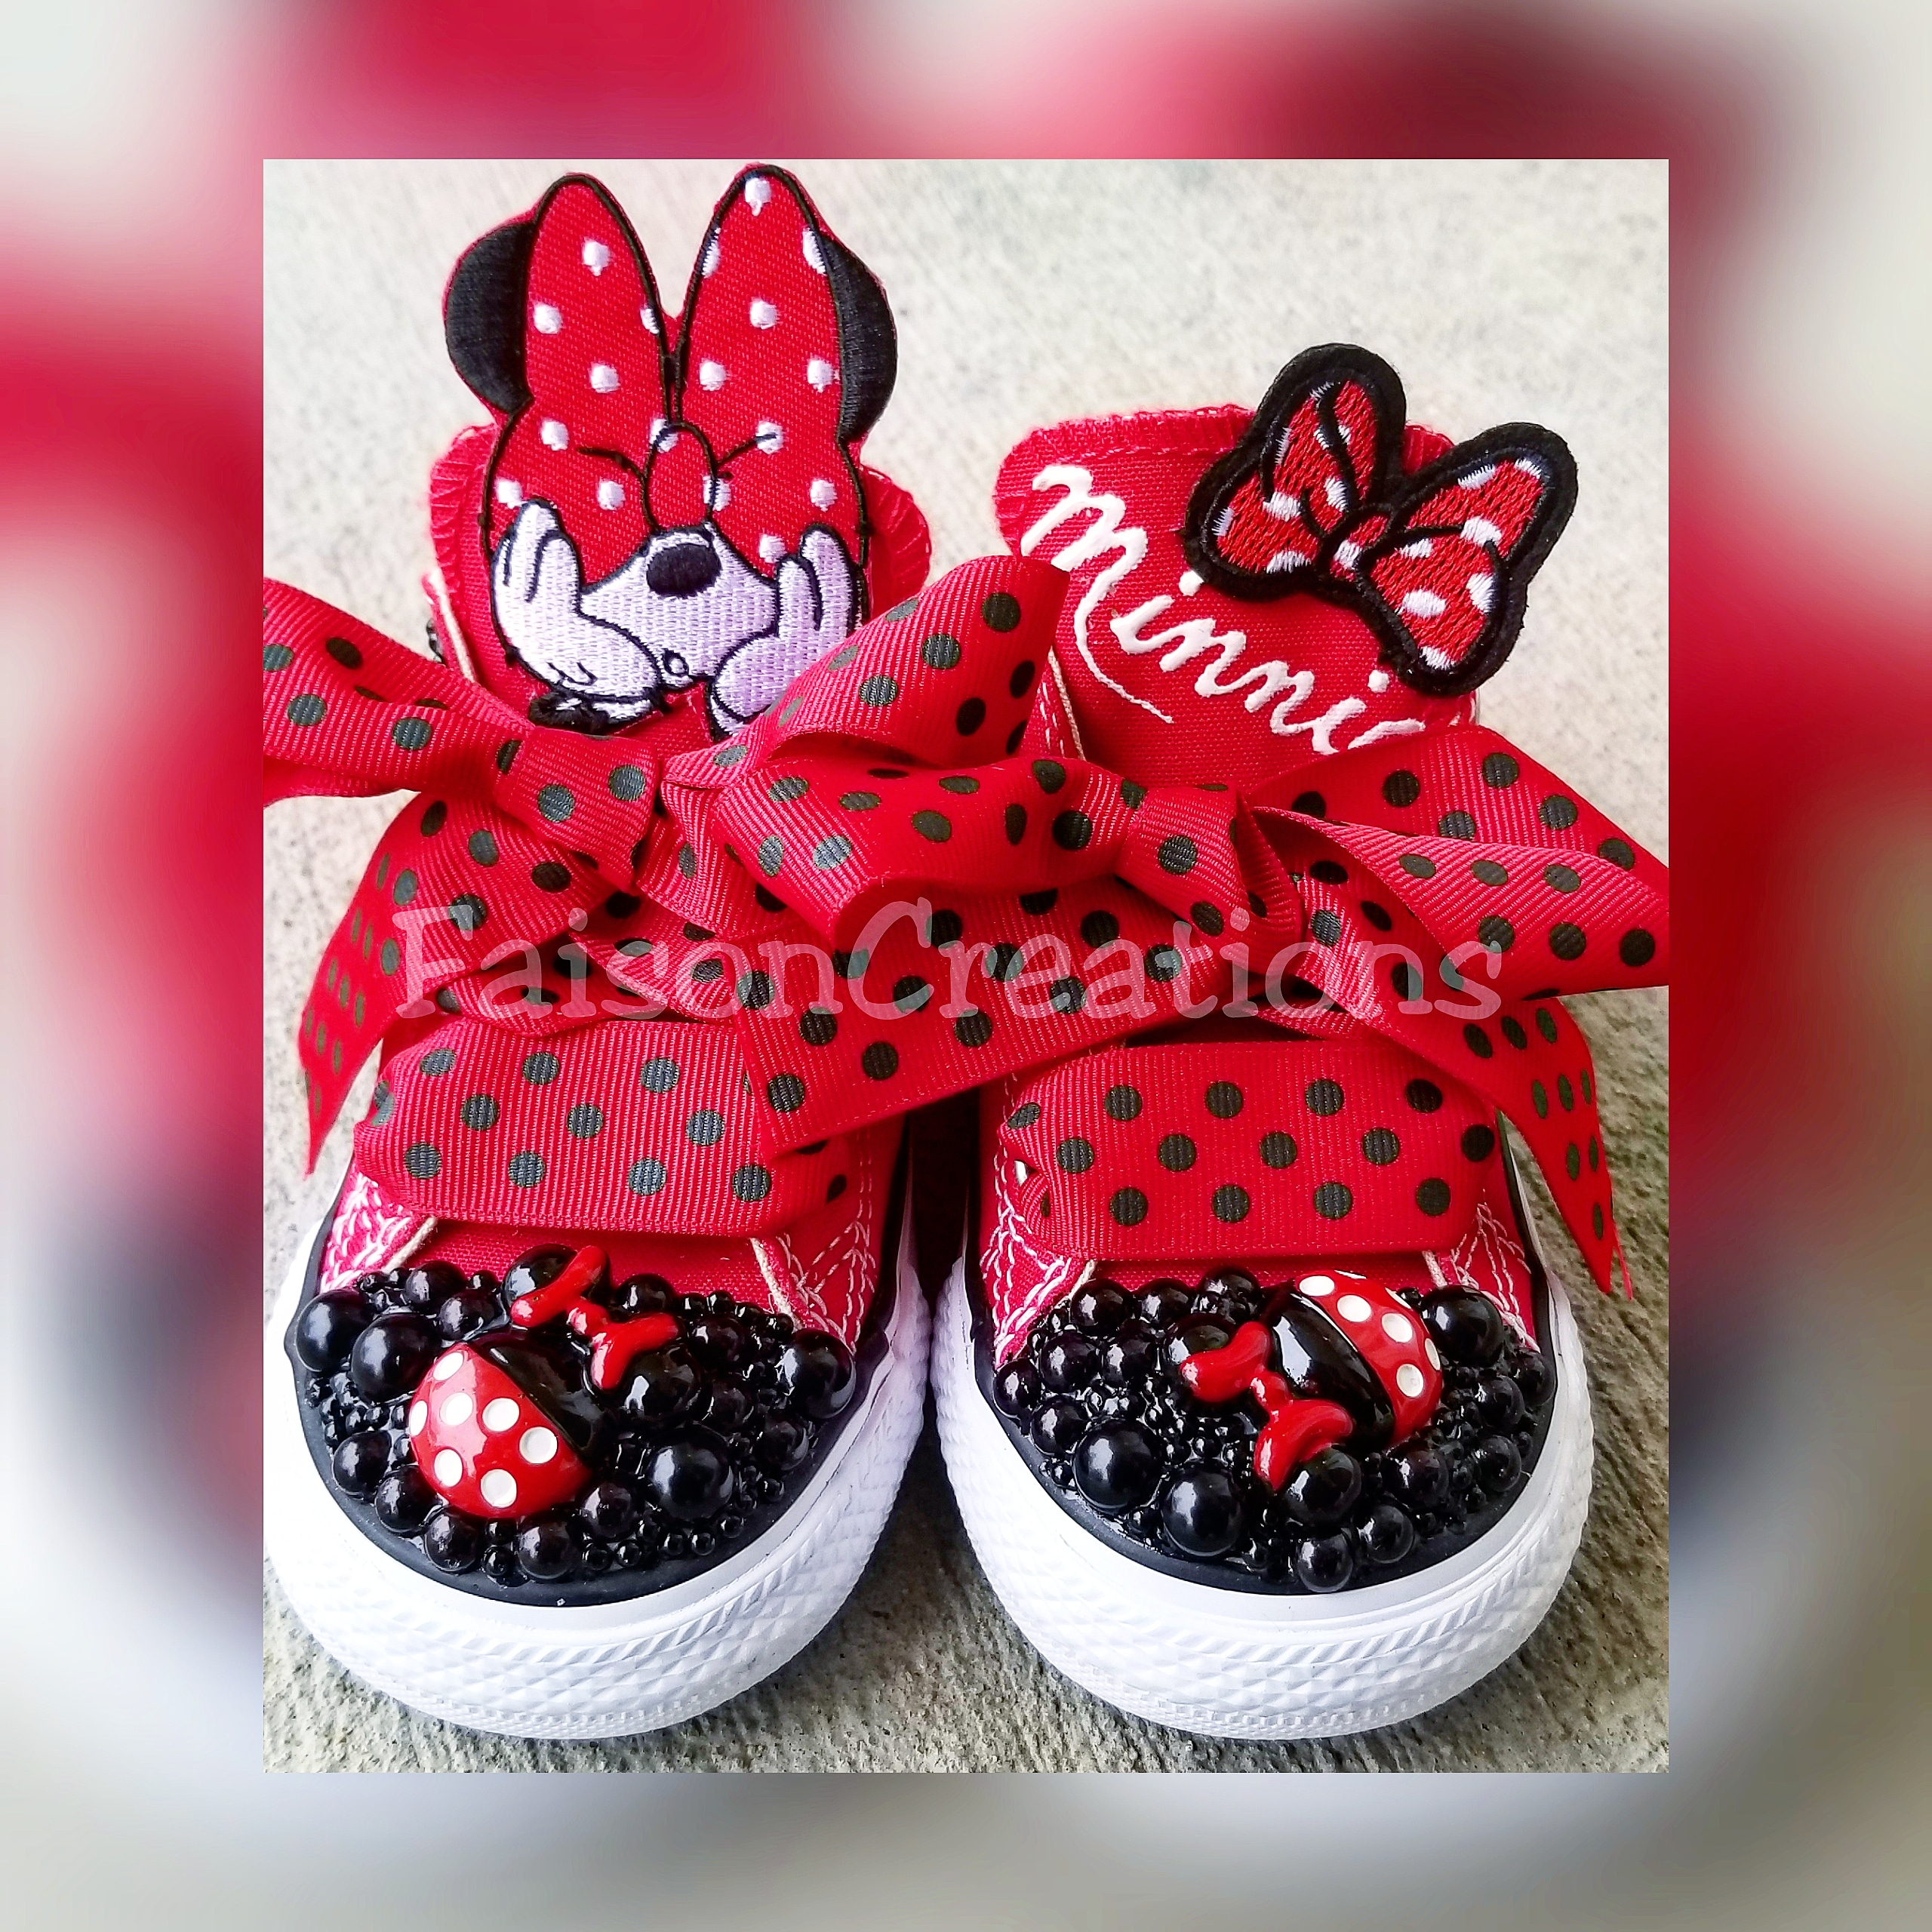 56442152ca1597 Custom Minnie Mouse Converse (Low Top) · FaisonCreations · Online ...